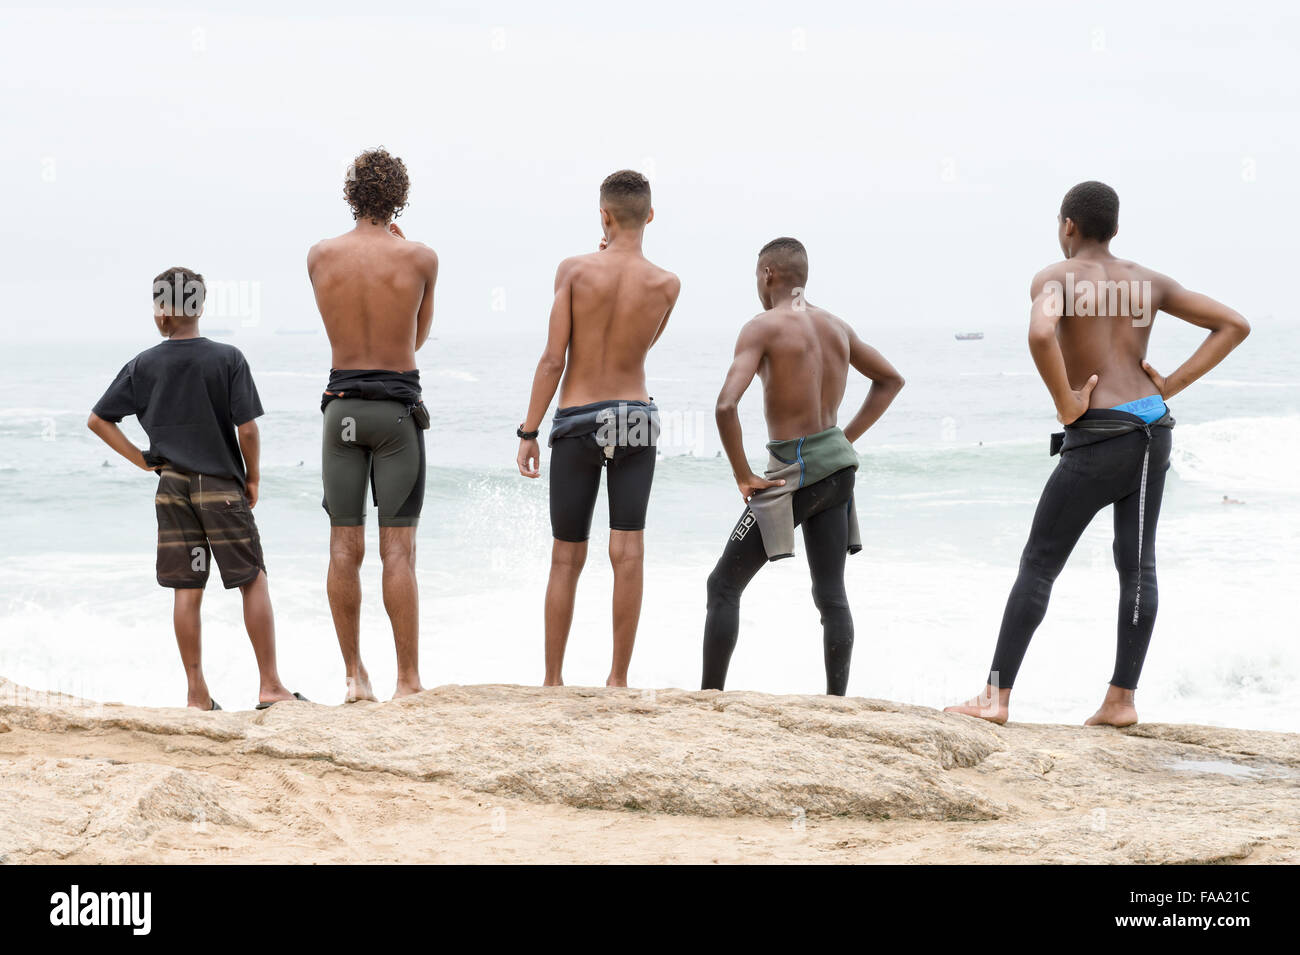 RIO DE JANEIRO, BRAZIL - OCTOBER 22, 2015: Brazilian surfers in wetsuits stand looking at incoming waves at Arpoador. - Stock Image